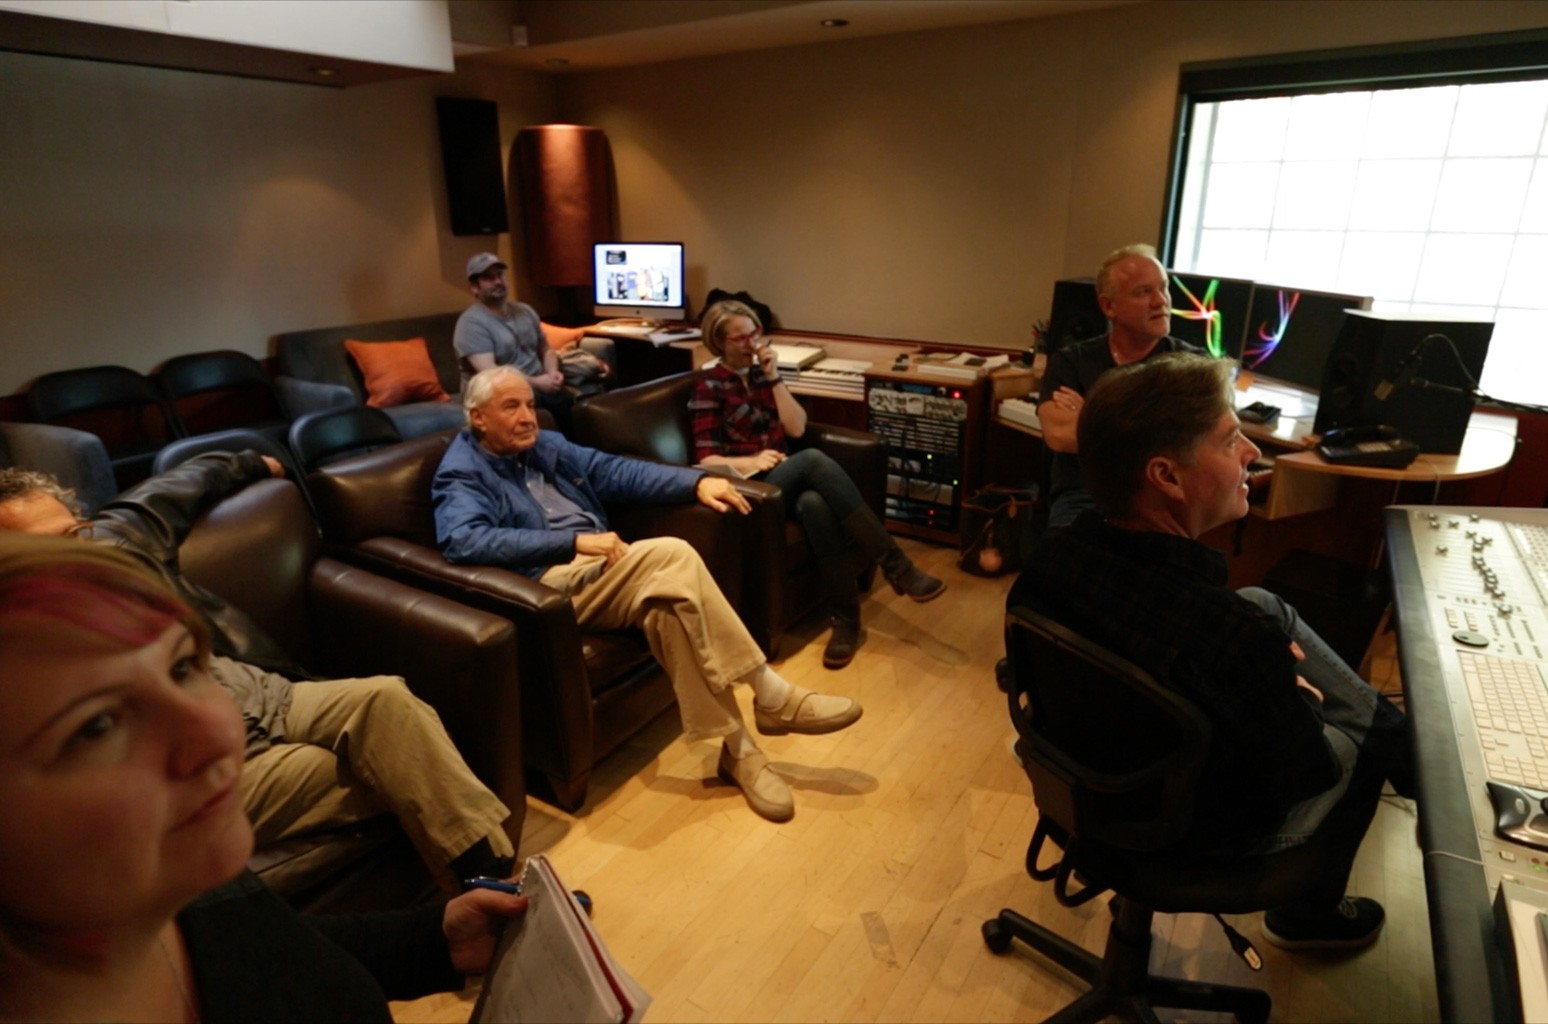 Late director Garry Marshall, seated center, and composer John Debney, second from right, in a scene from Score.